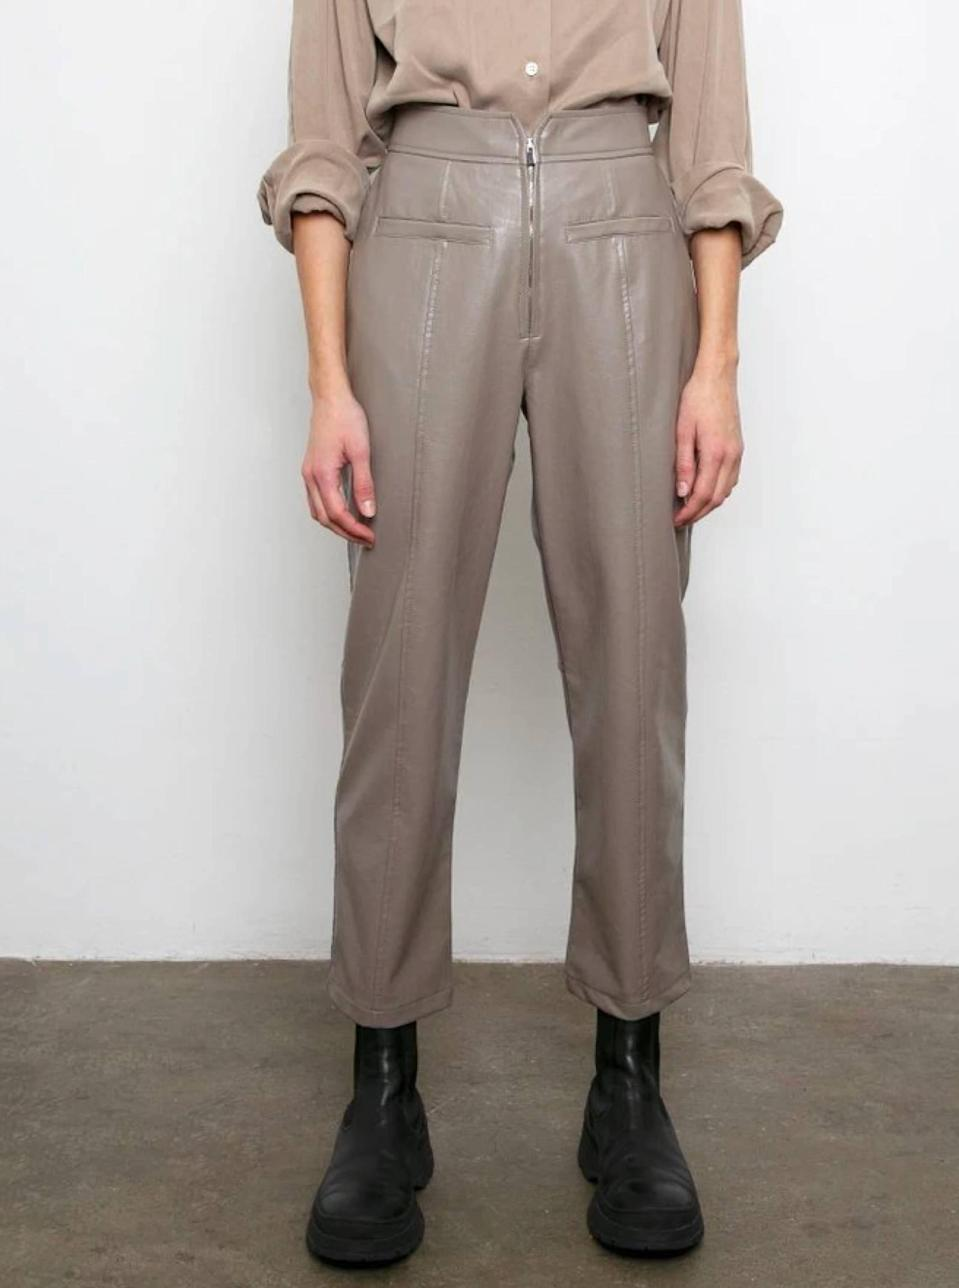 """$109, The Frankie Shop. <a href=""""https://thefrankieshop.com/products/zip-front-taupe-leather-pants?"""" rel=""""nofollow noopener"""" target=""""_blank"""" data-ylk=""""slk:Get it now!"""" class=""""link rapid-noclick-resp"""">Get it now!</a>"""